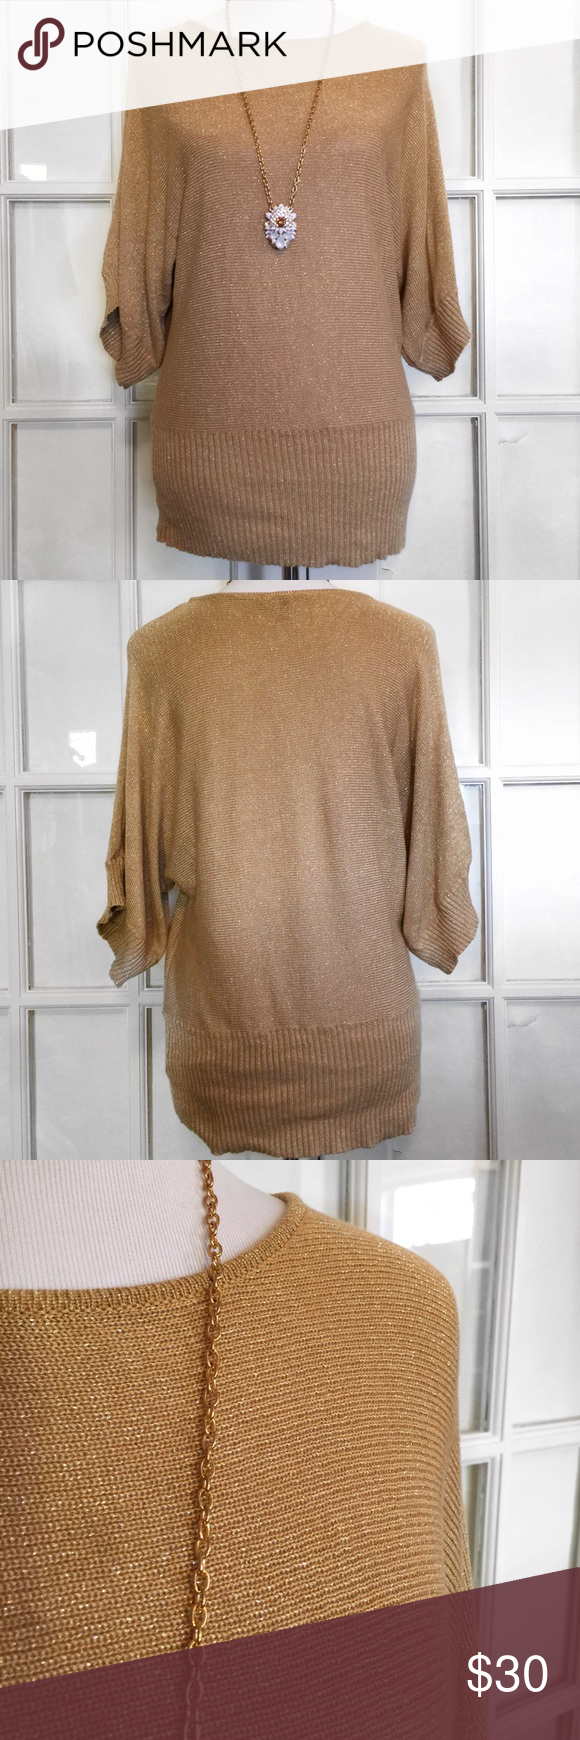 Cable & Gauge Gold Thread Dolman Sweater I love sparkly sweaters and this one is fantastic for the upcoming cold weather. Dolman, 3/4 length, wide sleeves and ribbed waist band. Wear with tights for an effortless style! Machine wash/Dry Flat Cable & Gauge Sweaters Crew & Scoop Necks